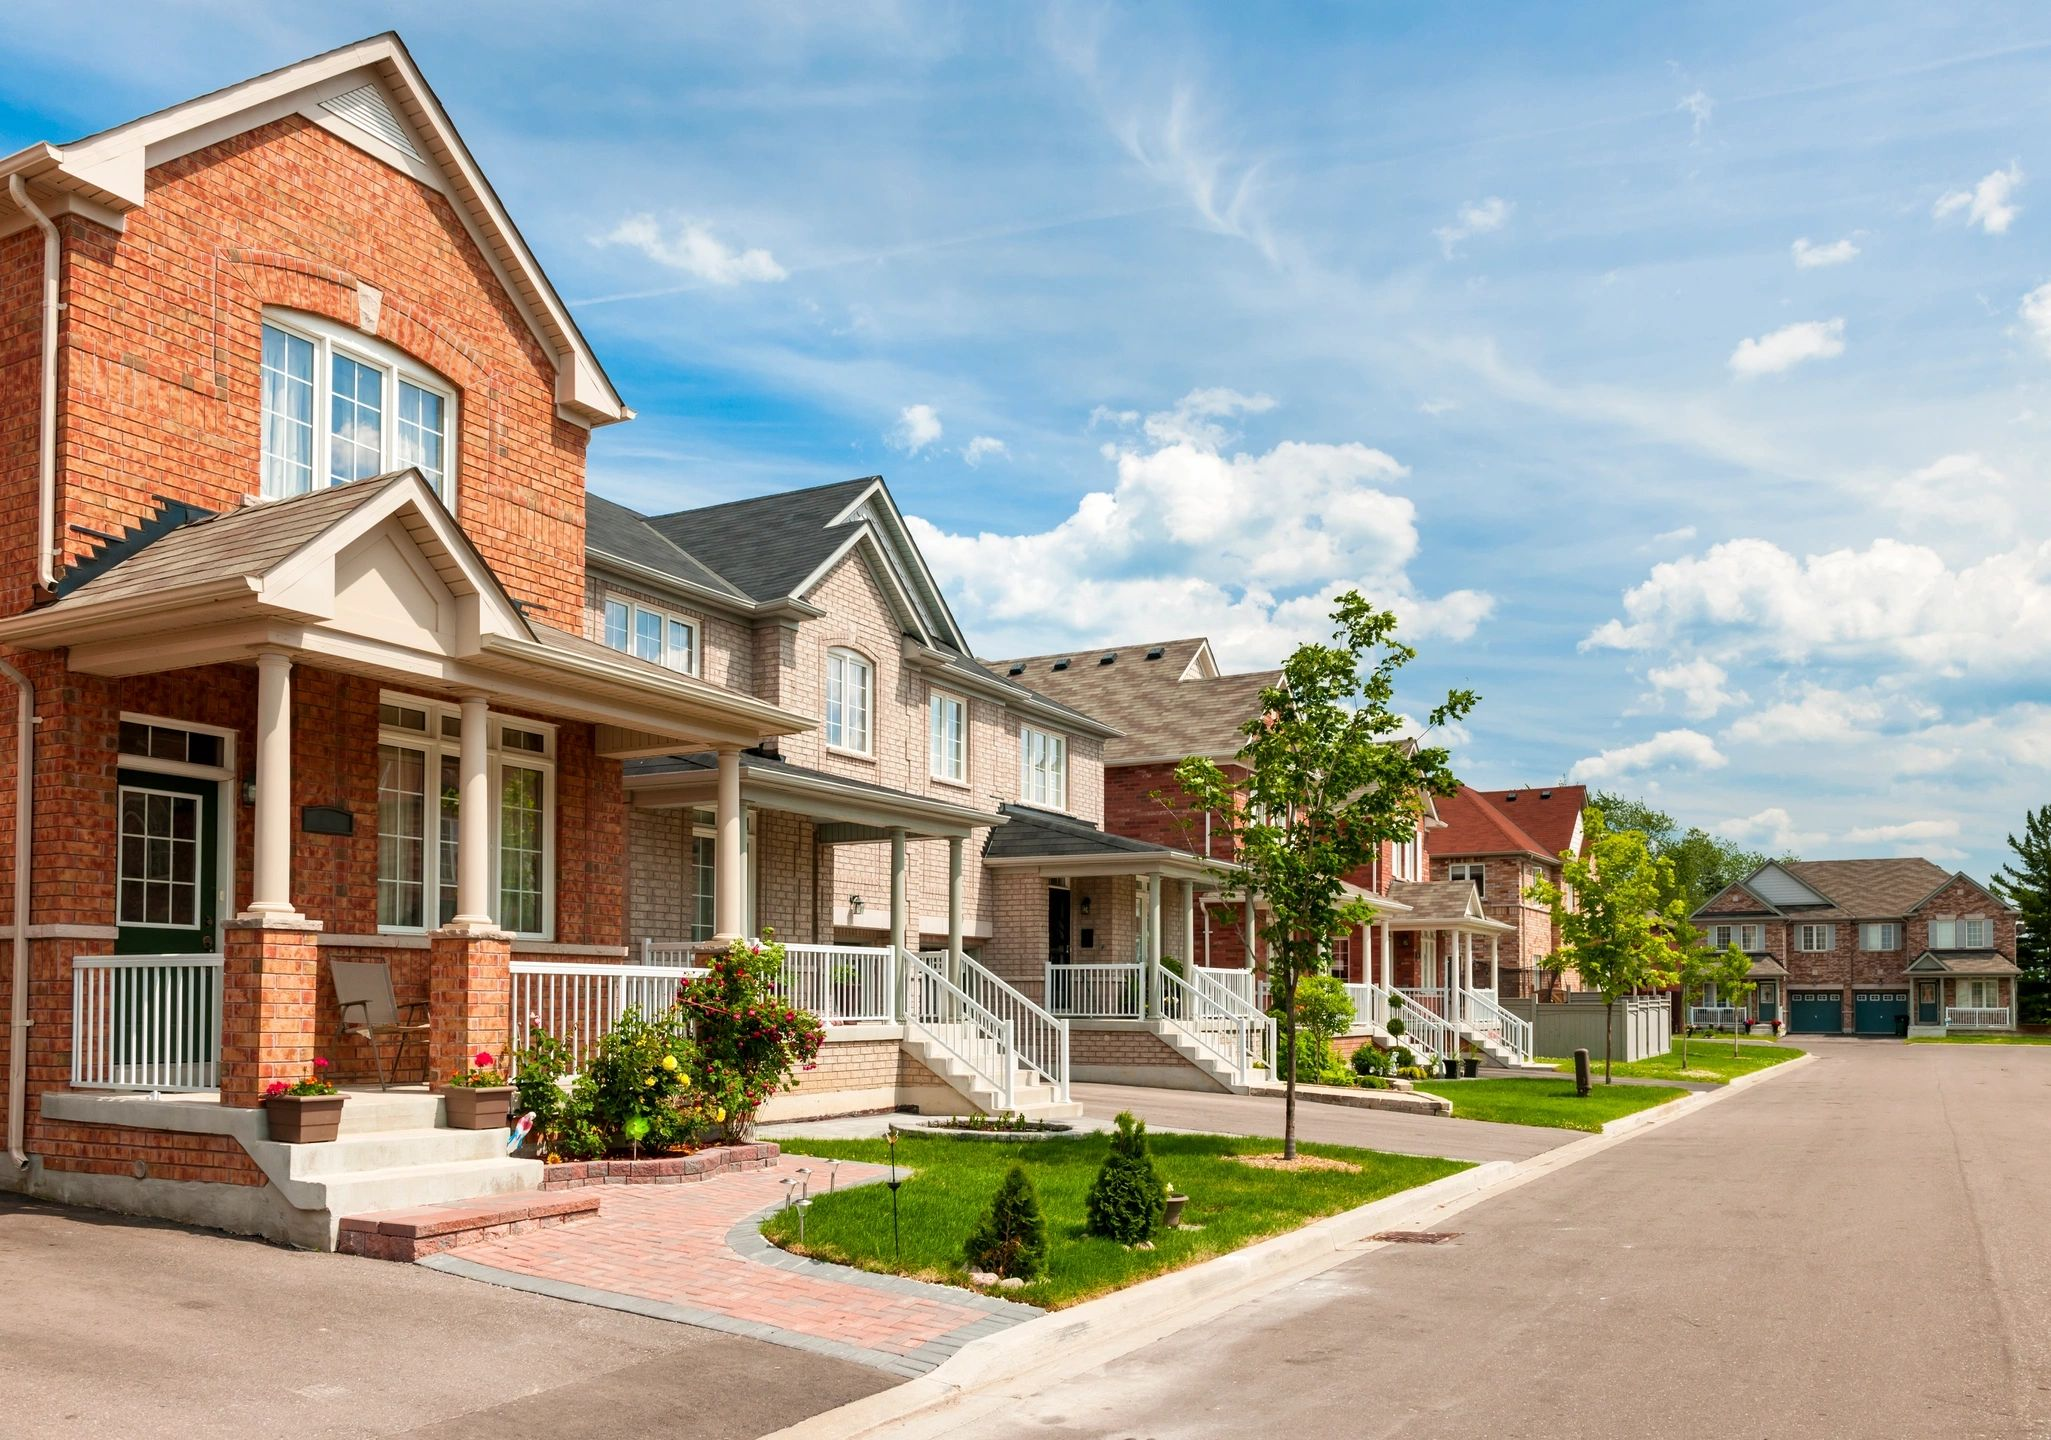 Talking to Adult Children: The Hot Housing Market